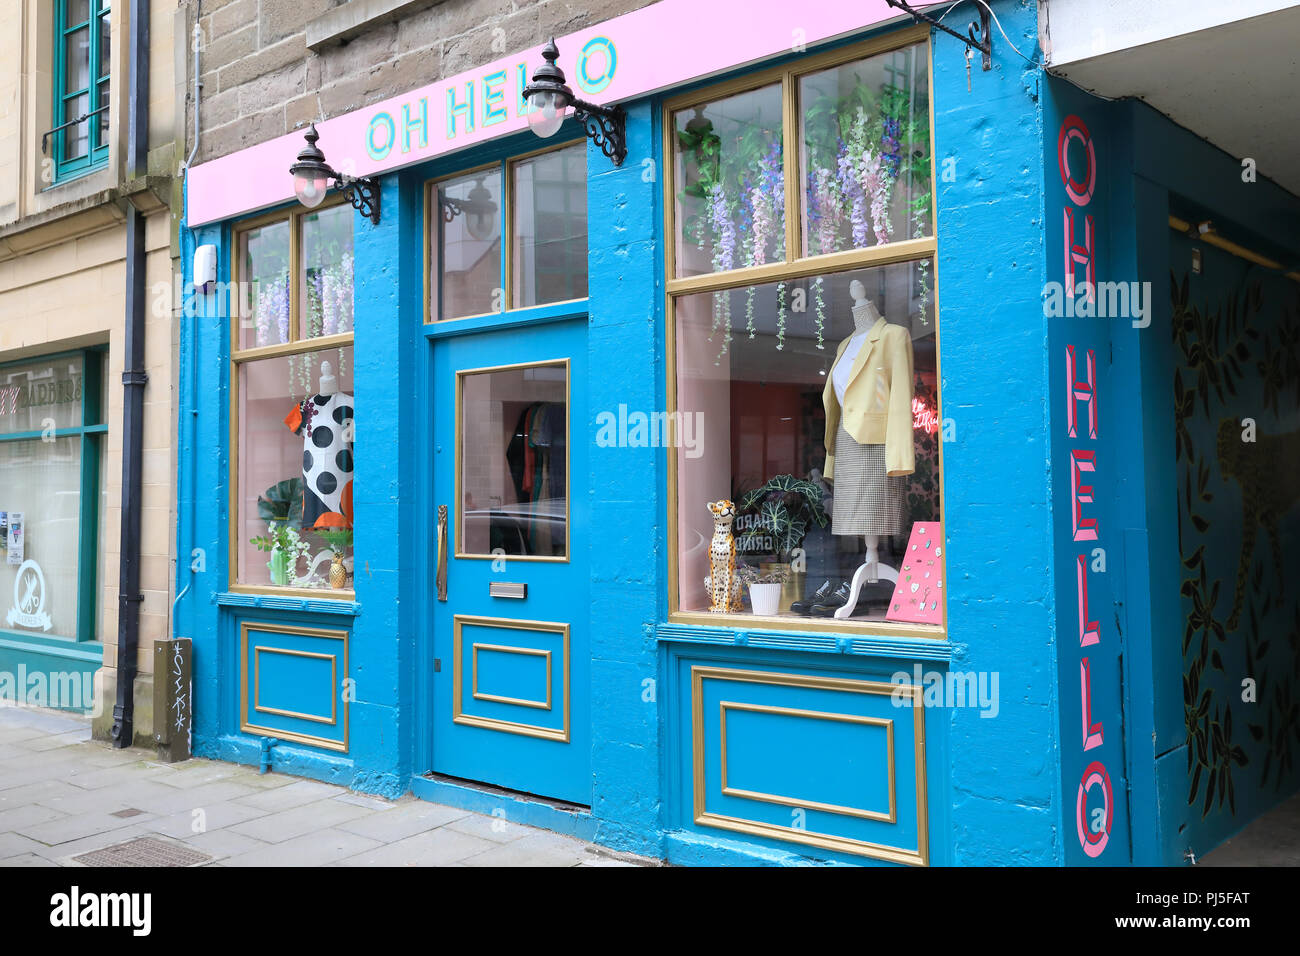 Oh HelloTrendy cafes and shops on Exchange Street in central Dundee, the 'City of Discovery', in Scotland, UK - Stock Image